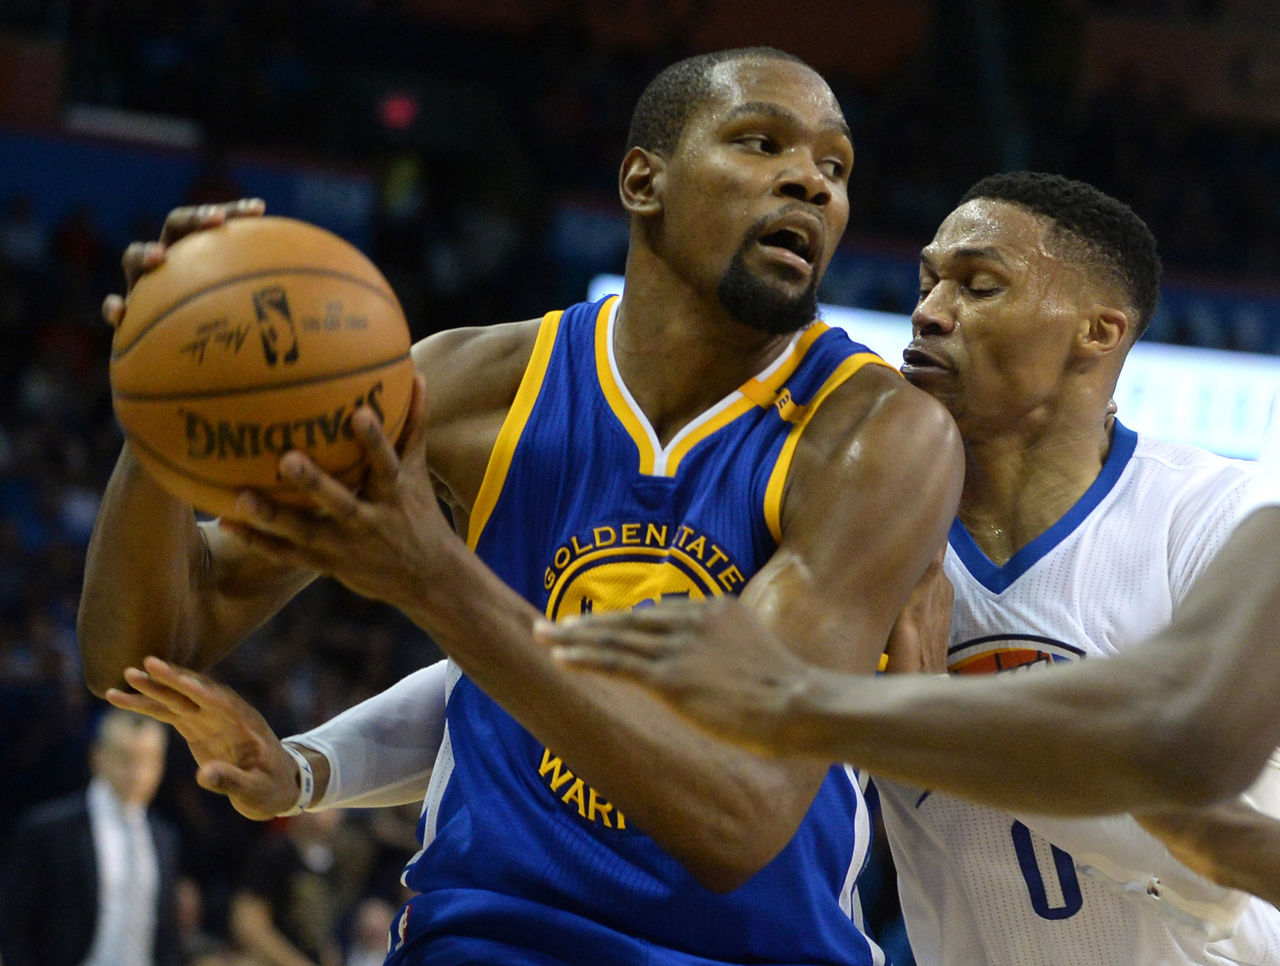 Cropped_2017-02-12t025012z_1108888661_nocid_rtrmadp_3_nba-golden-state-warriors-at-oklahoma-city-thunder